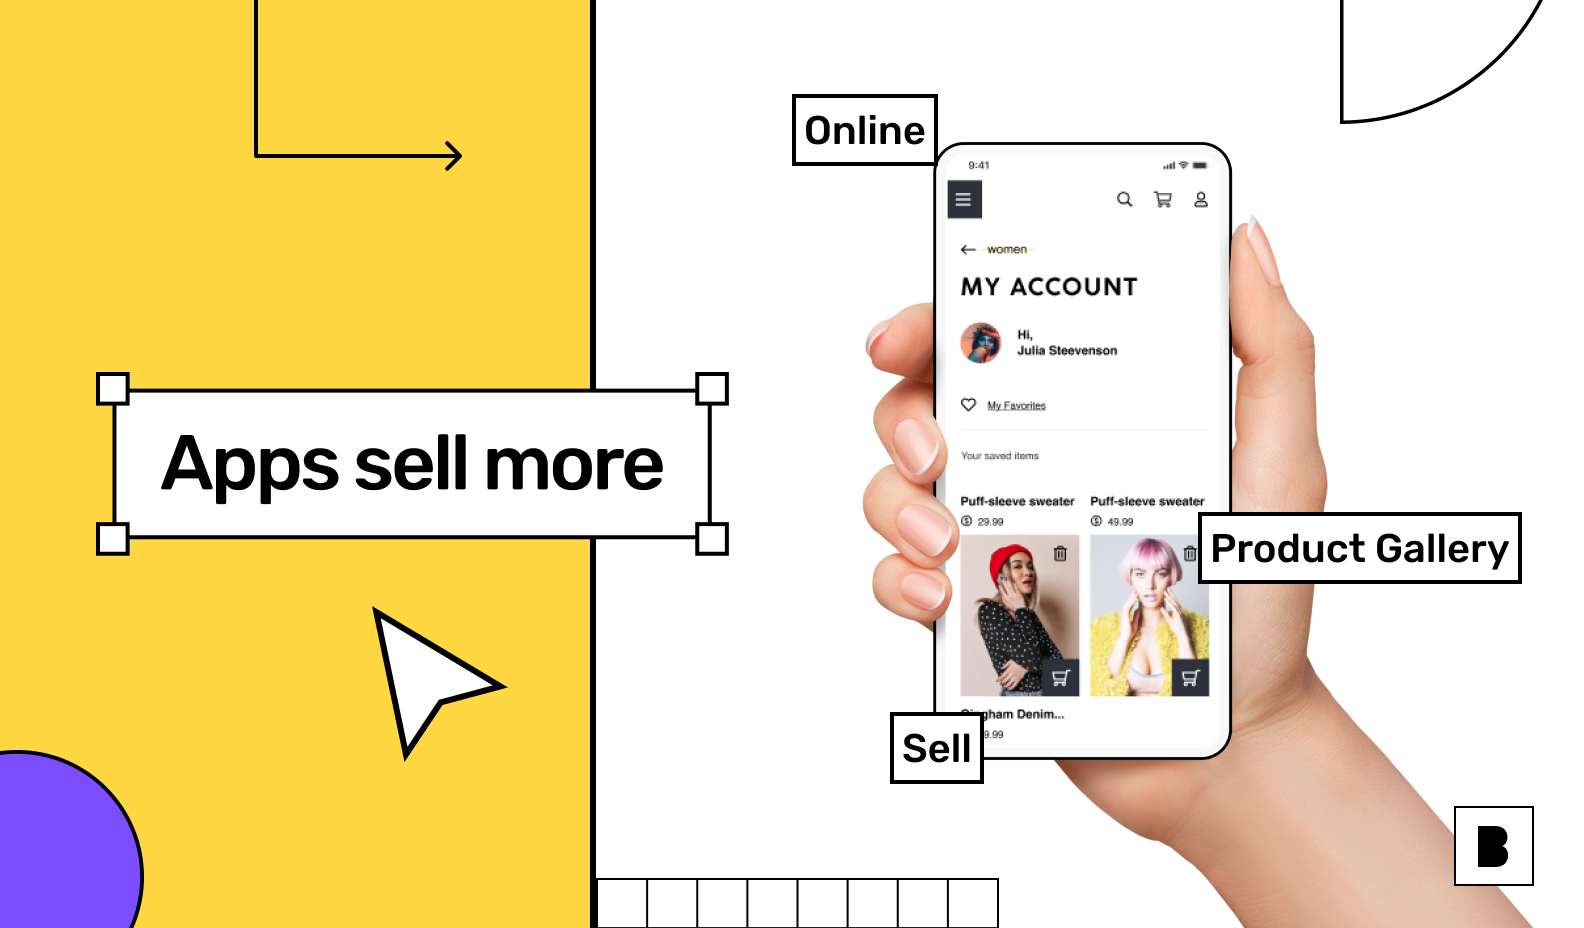 ecommerce app with my account screen